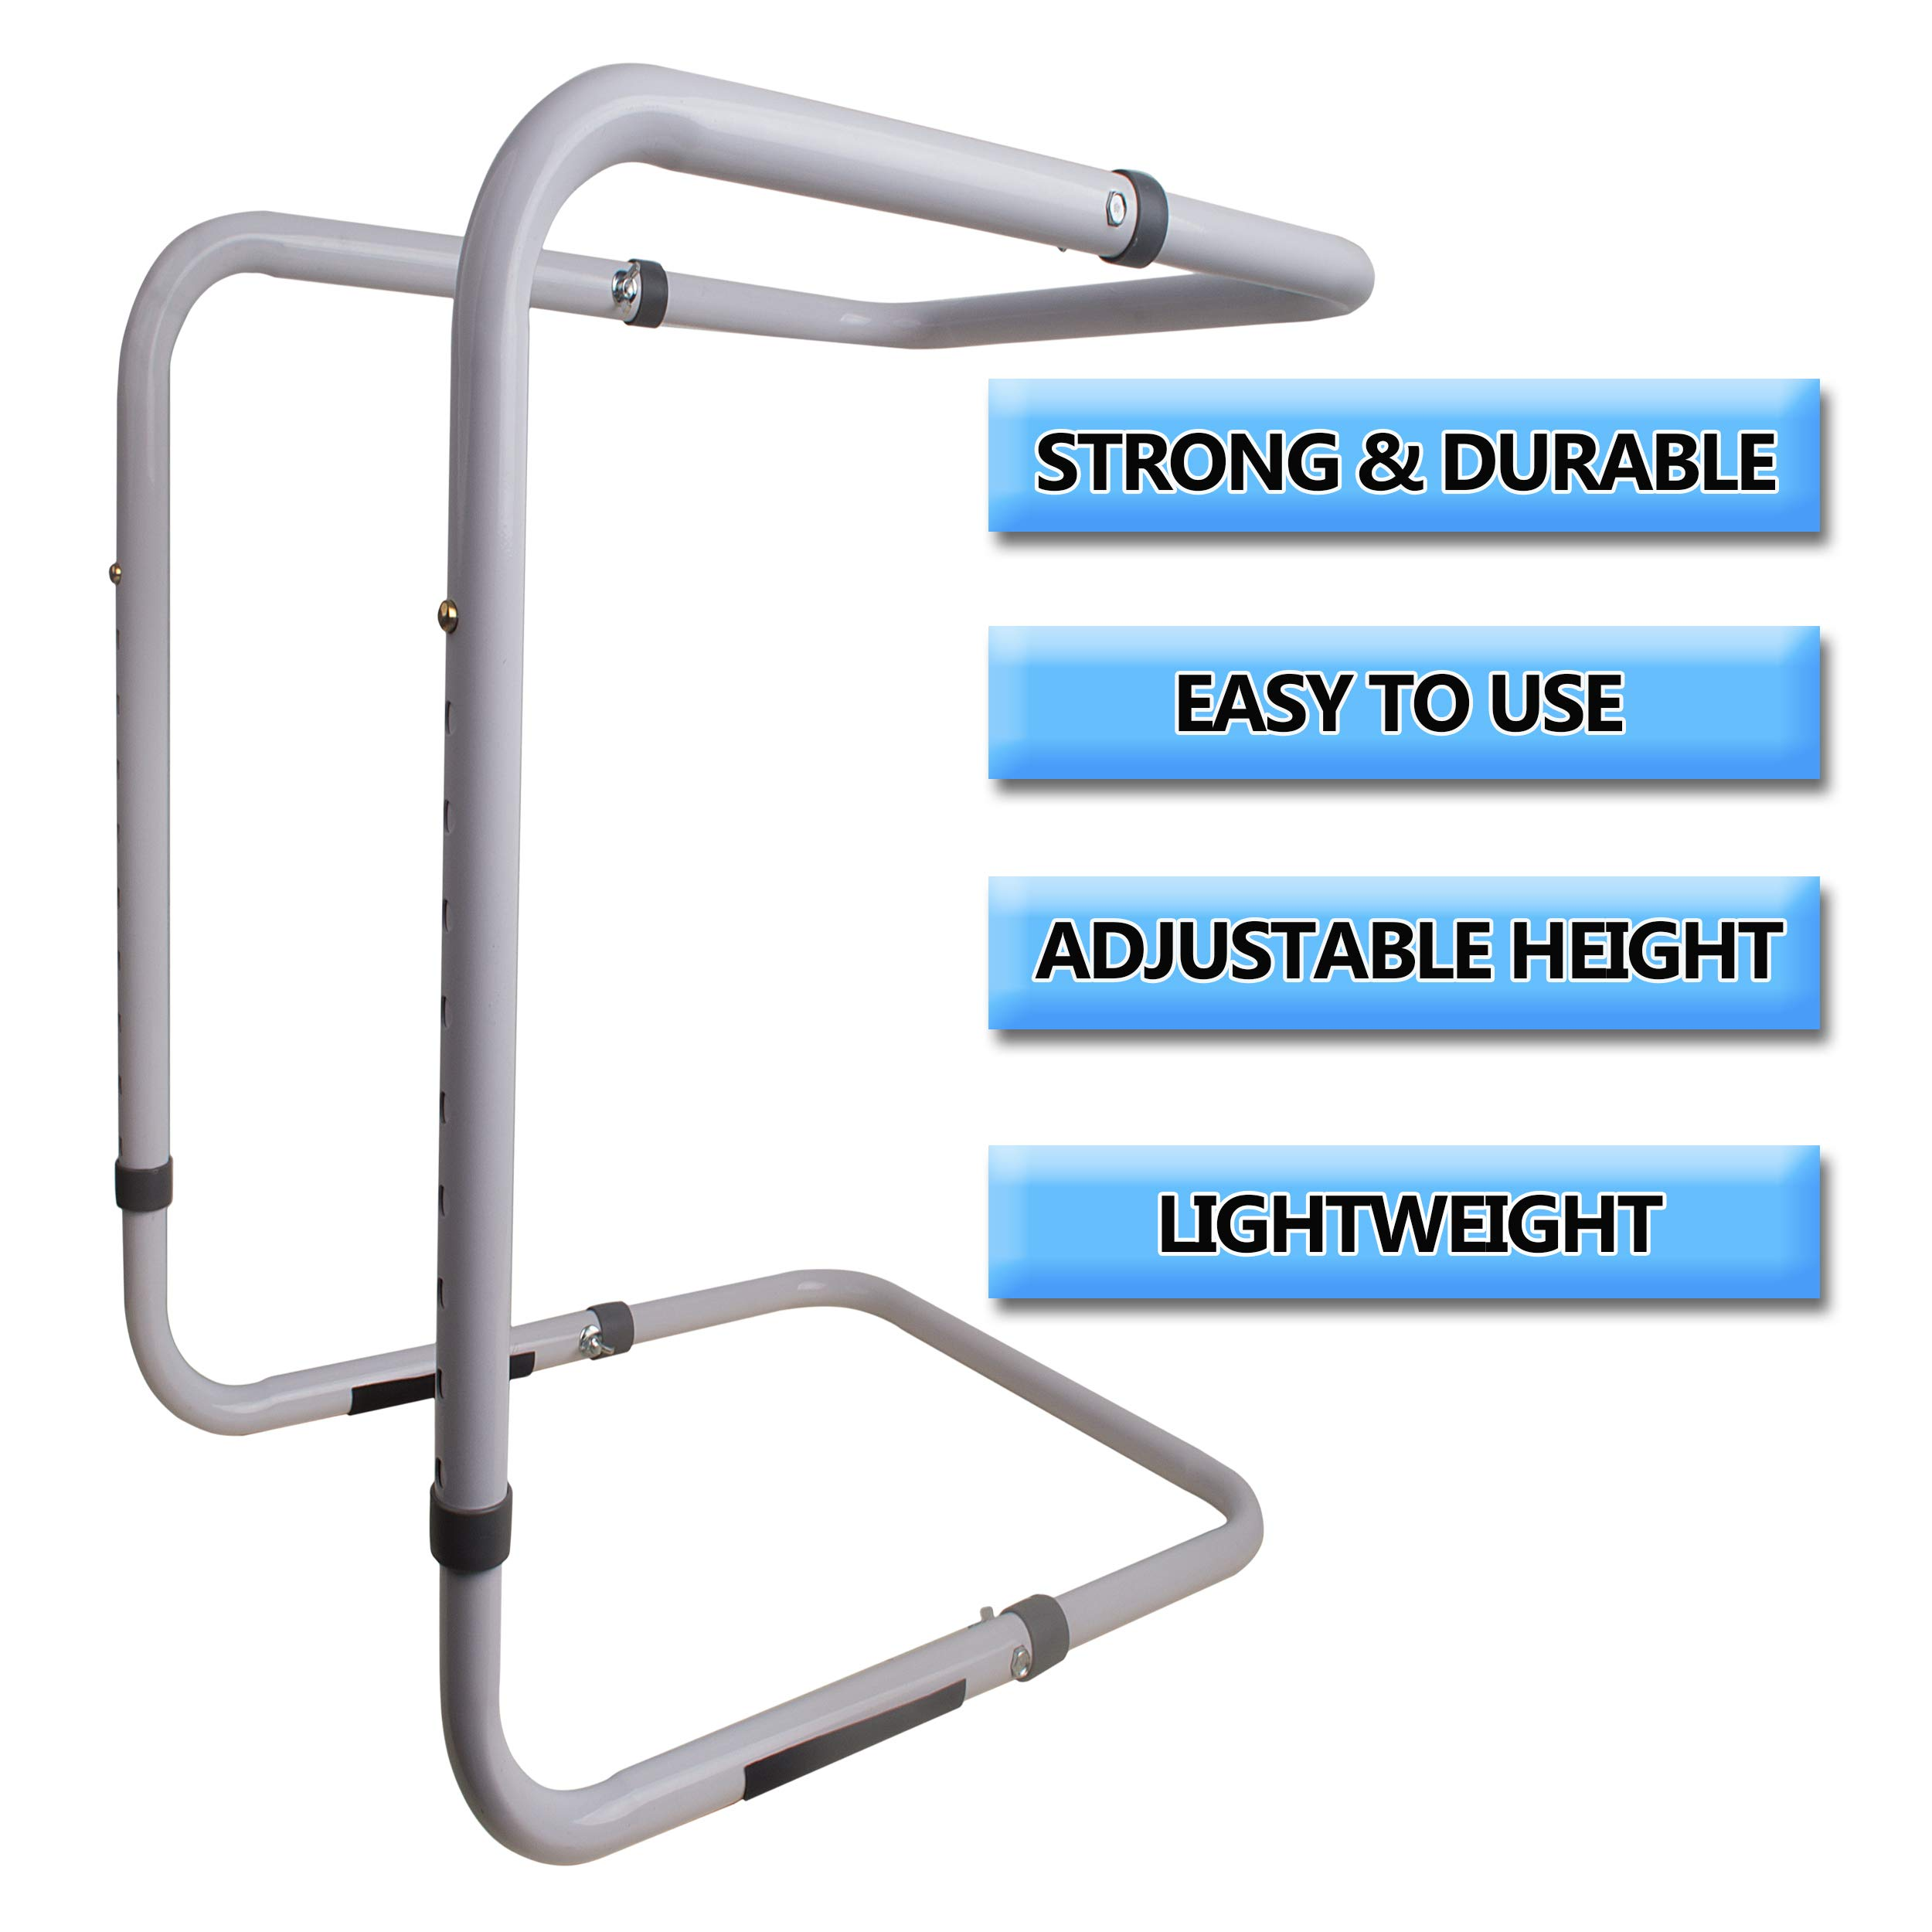 [Upgraded] Adjustable Heavy Duty Blanket Lifter - Blanket Cradle for Feet - Steel and Aluminum Lift Bar Support Frame on Bed for Neuropathy, Foot Cramp, Sensitive Feet, Surgery Recovery, Gout 20-28''